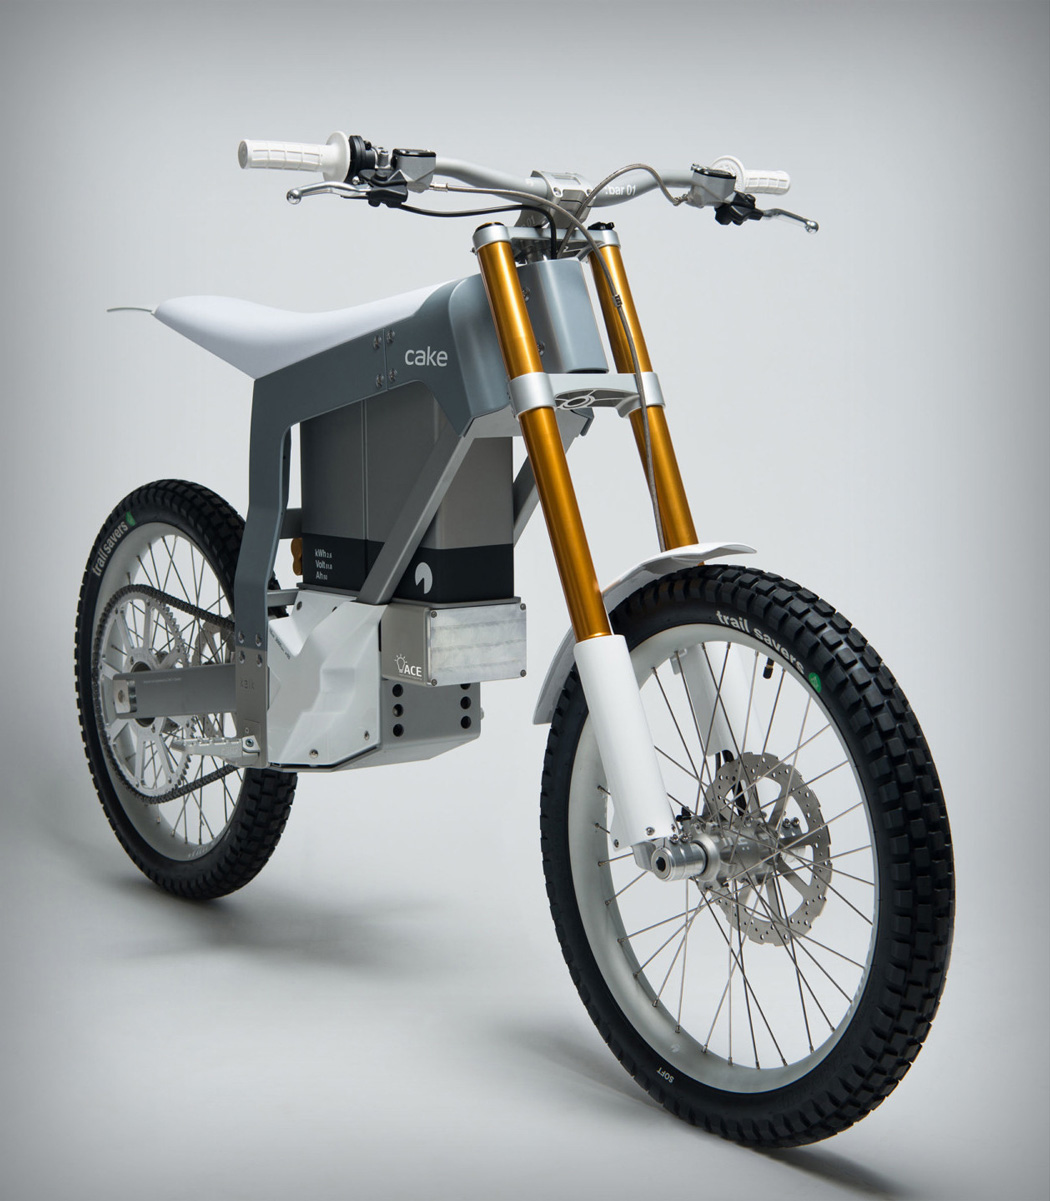 kalk_electric_dirtbike_02